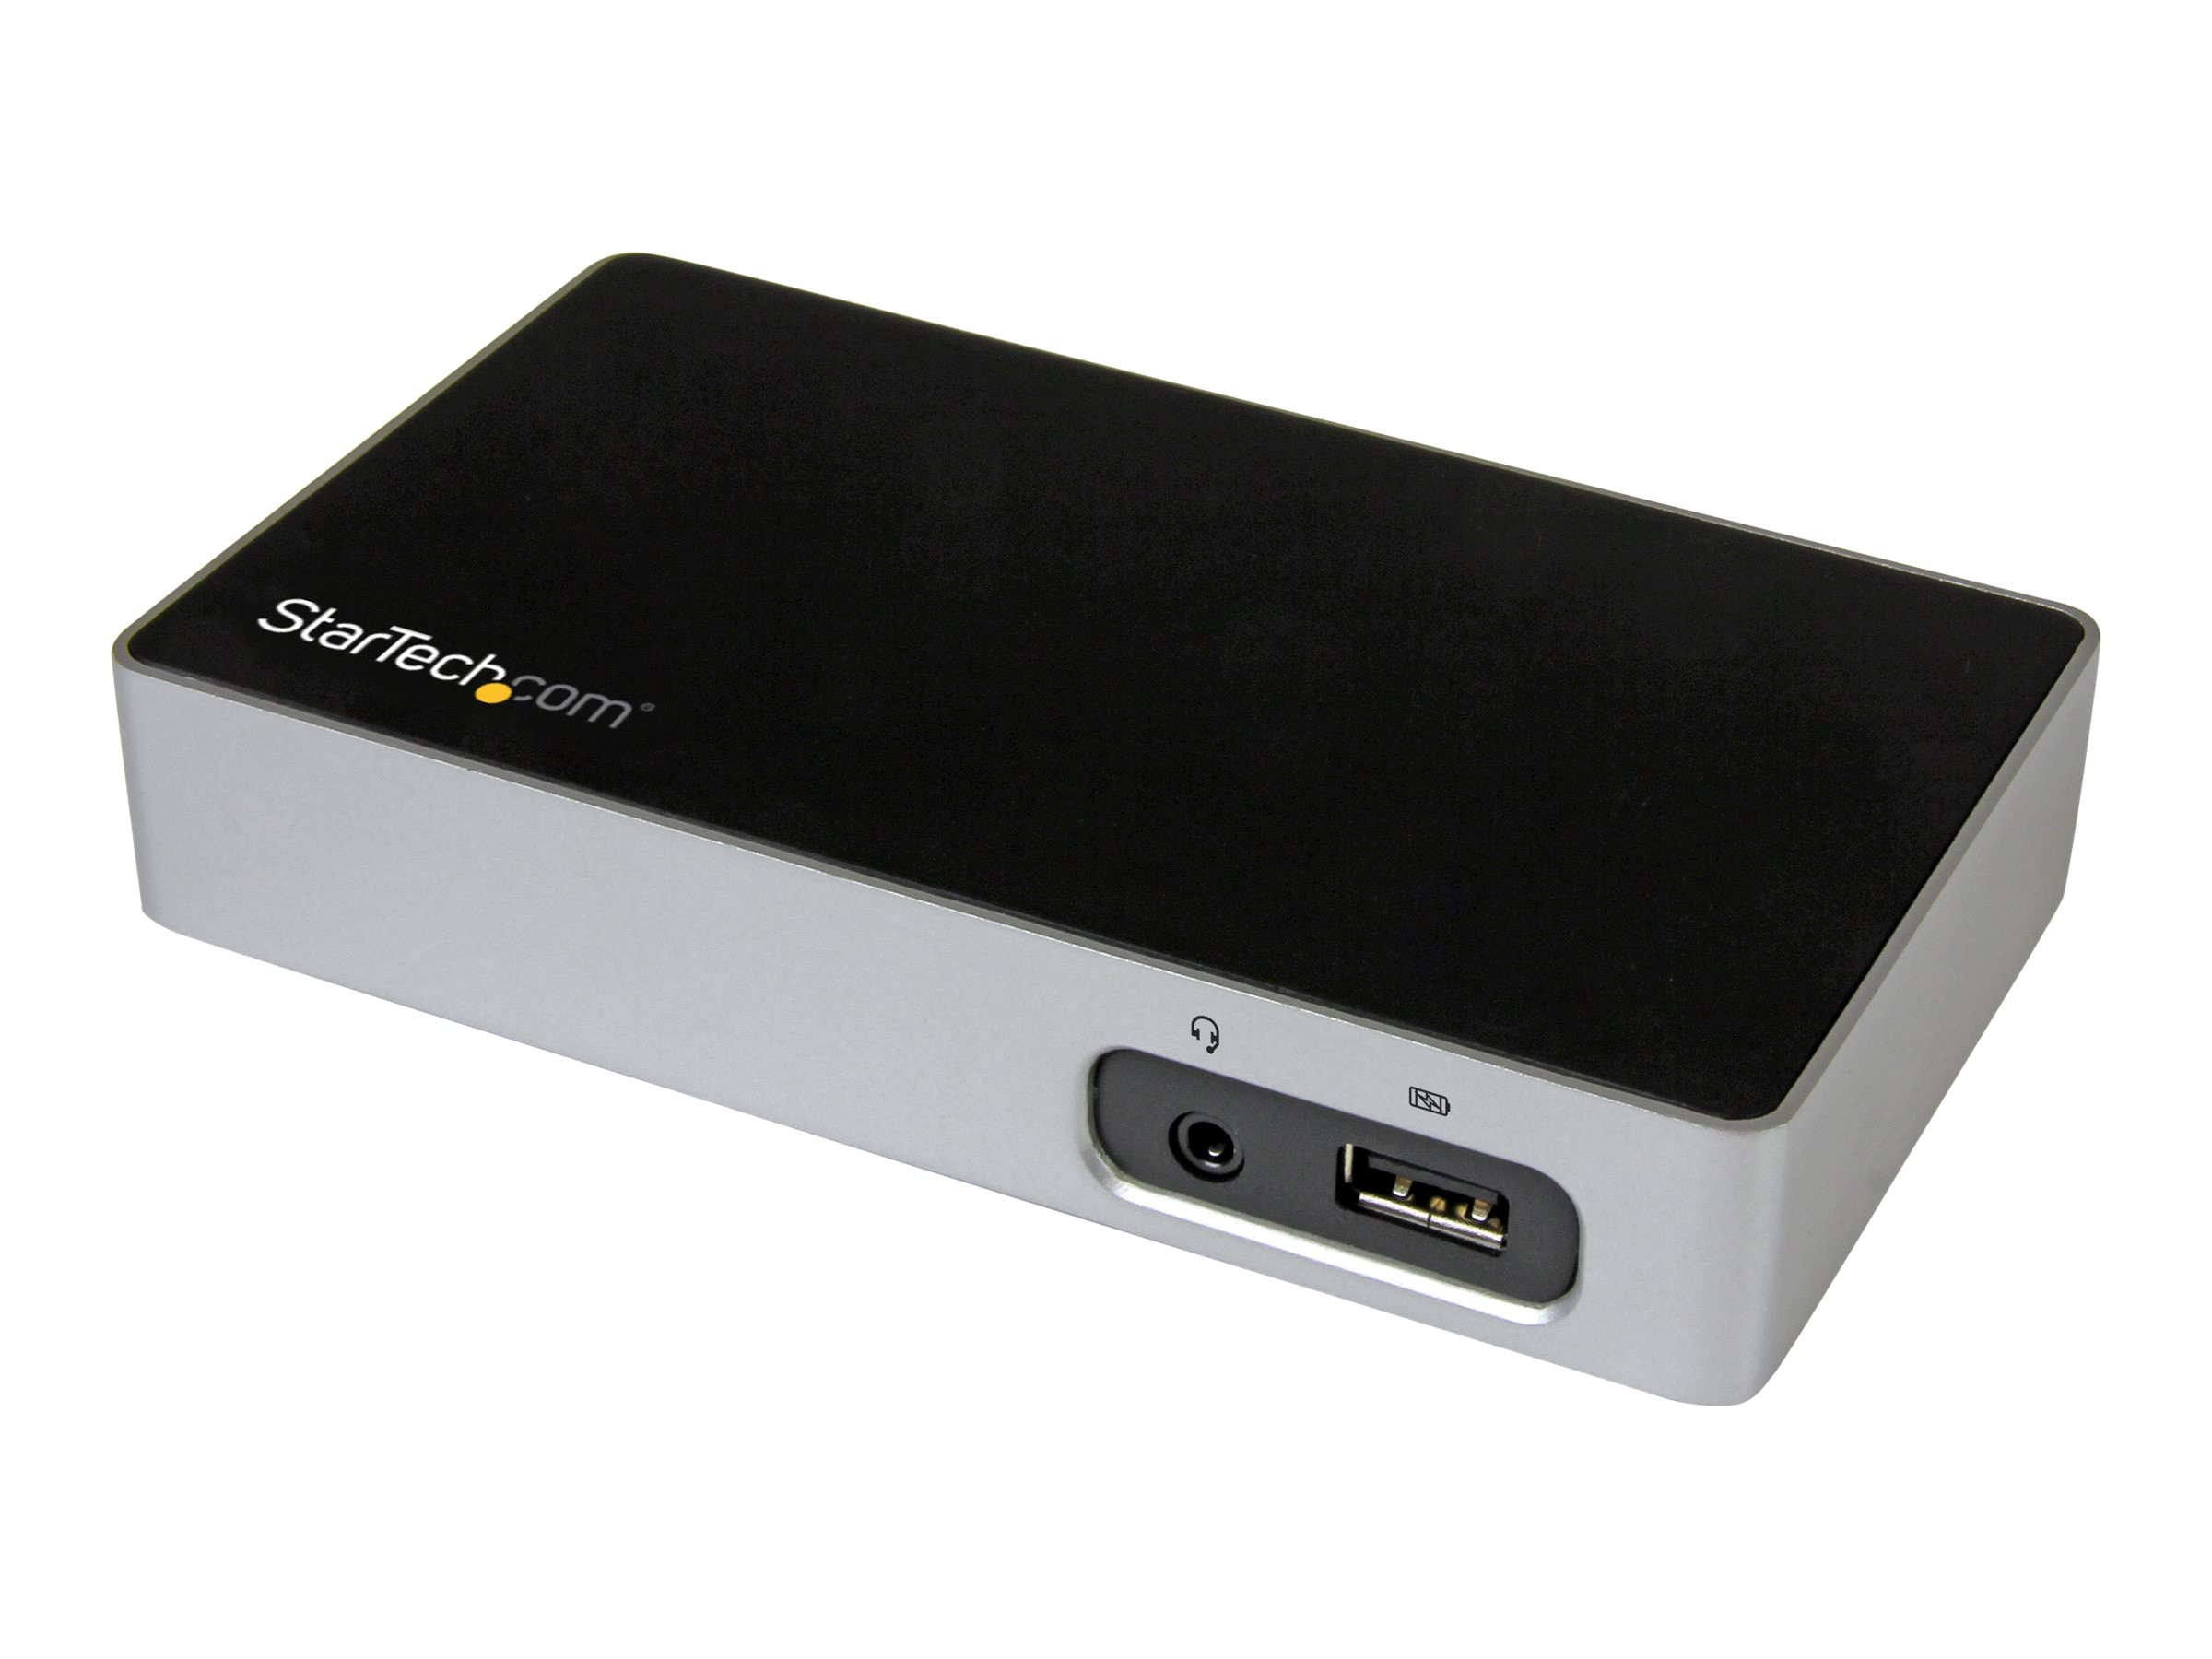 StarTech.com USB 3.0 4K DisplayPort Docking Station, USB3VDOCK4DP